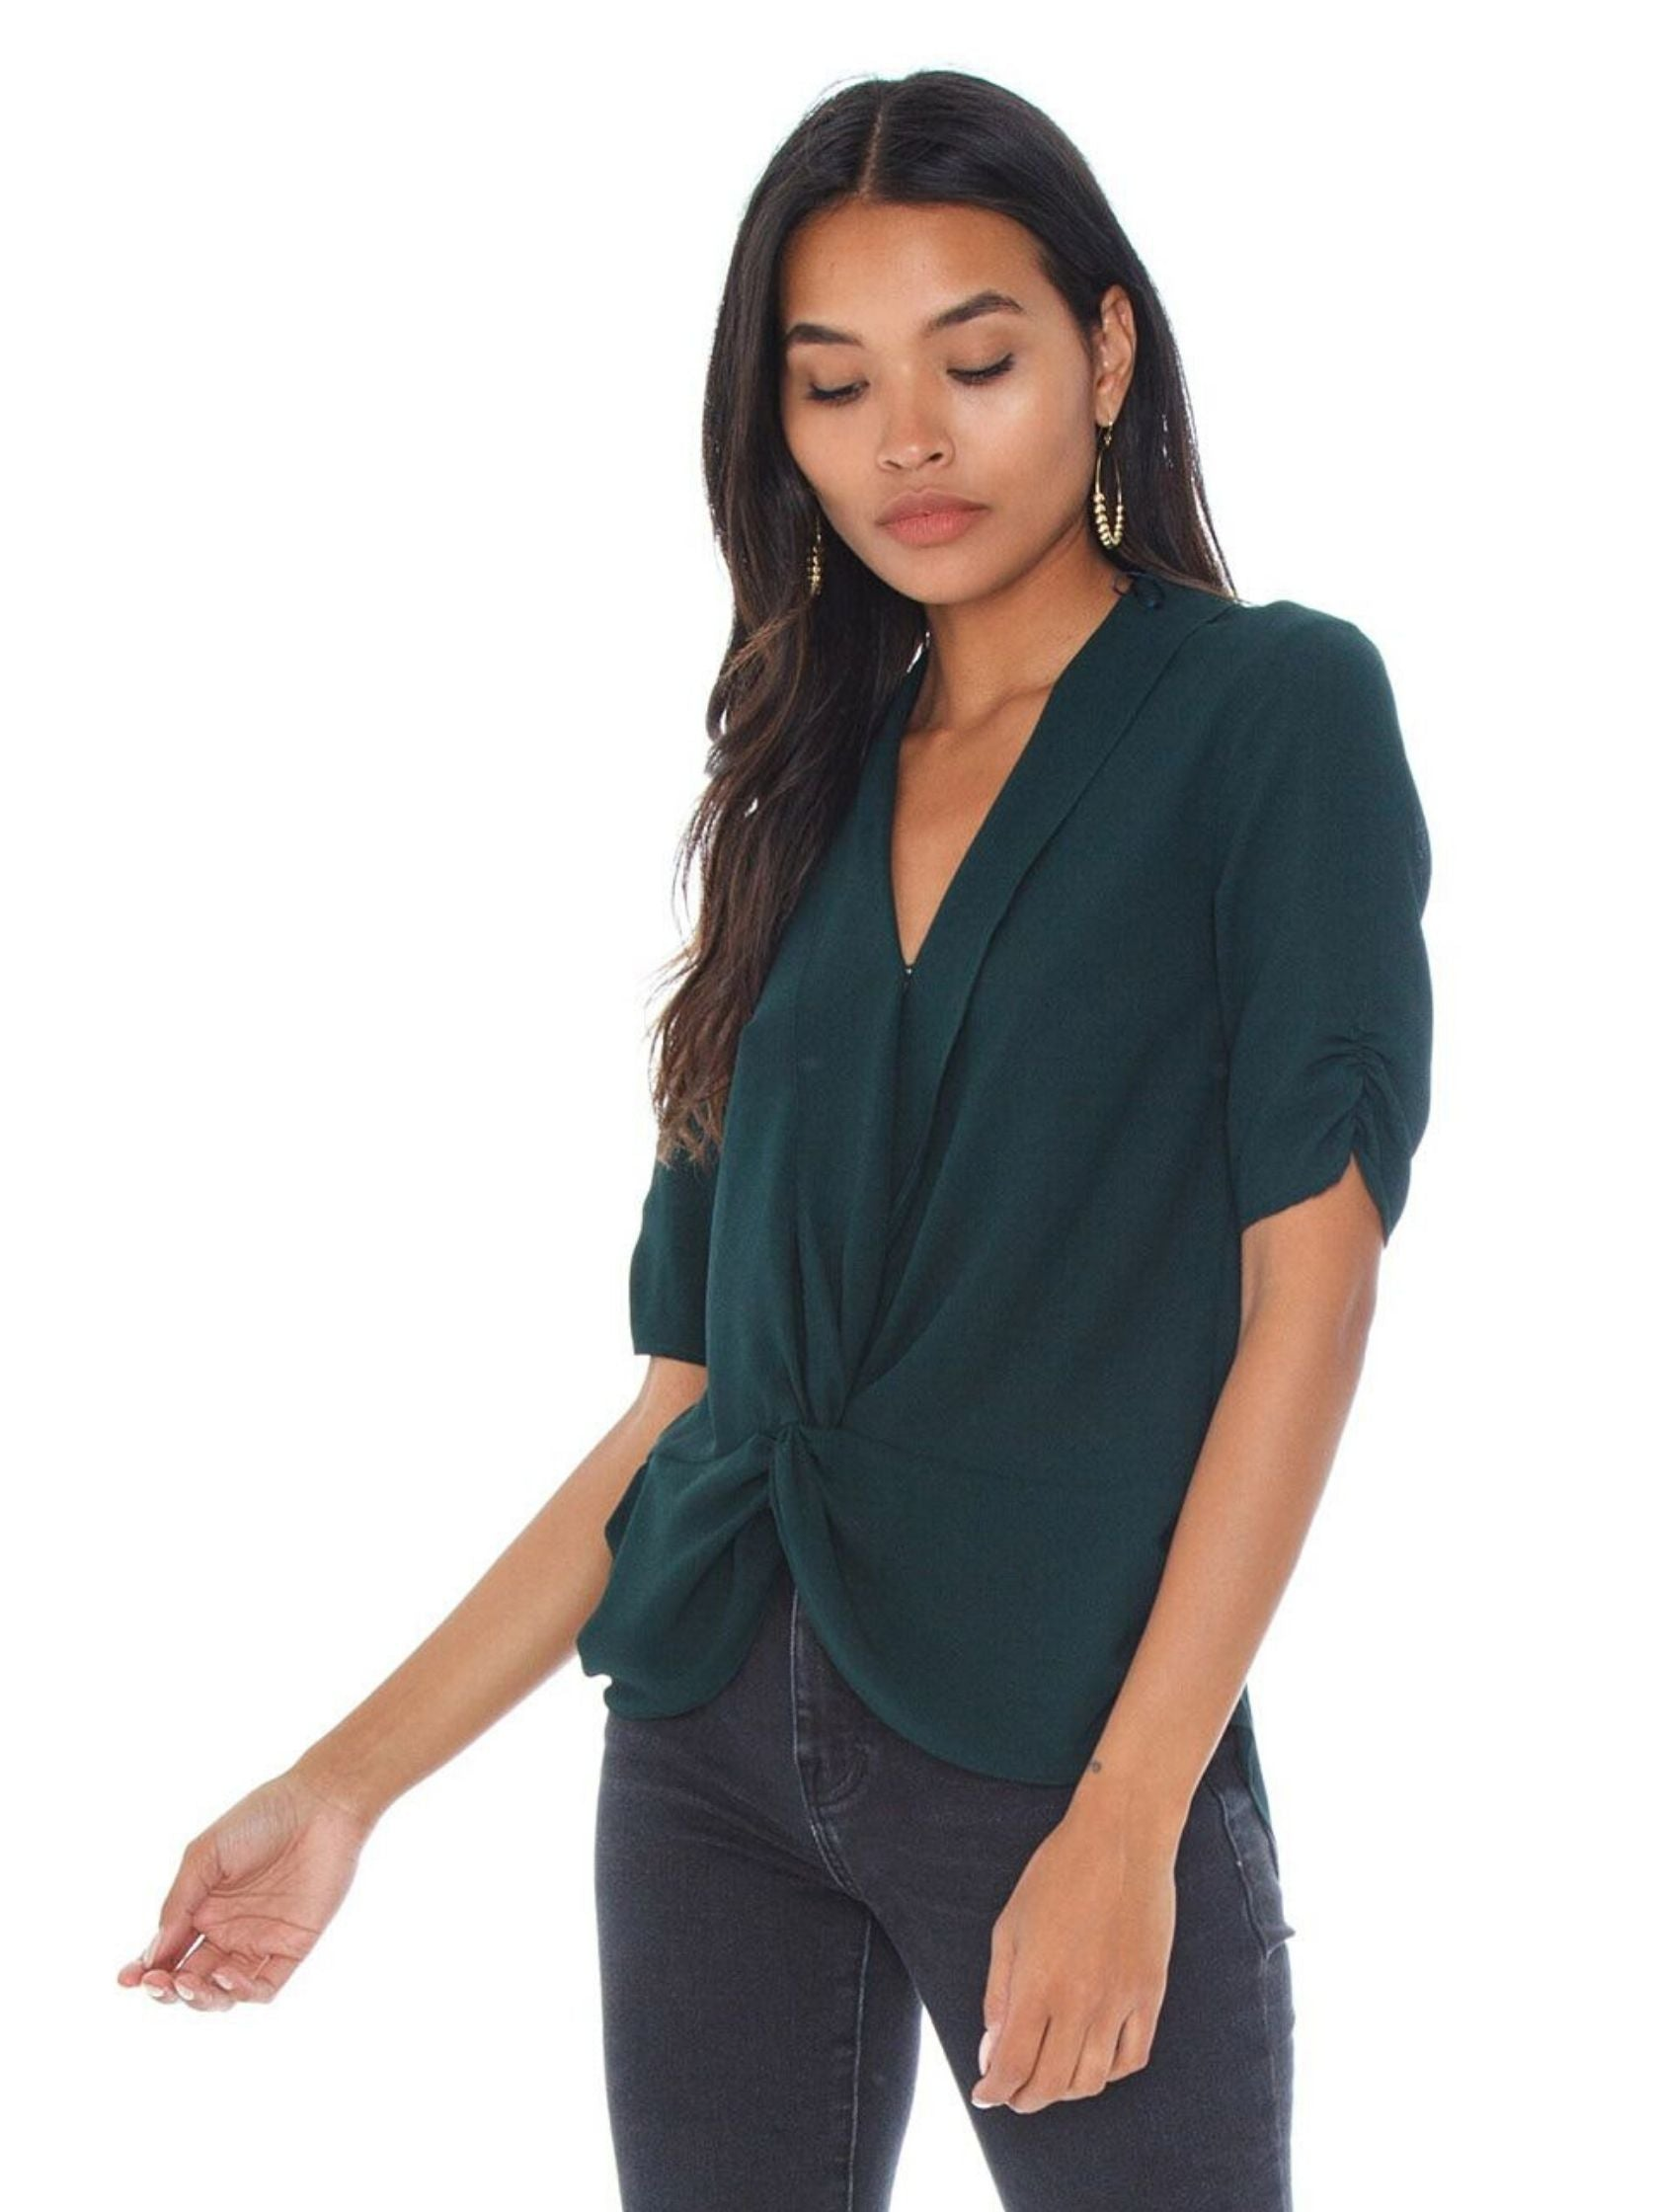 Women wearing a top rental from 1.STATE called Twist Front Blouse